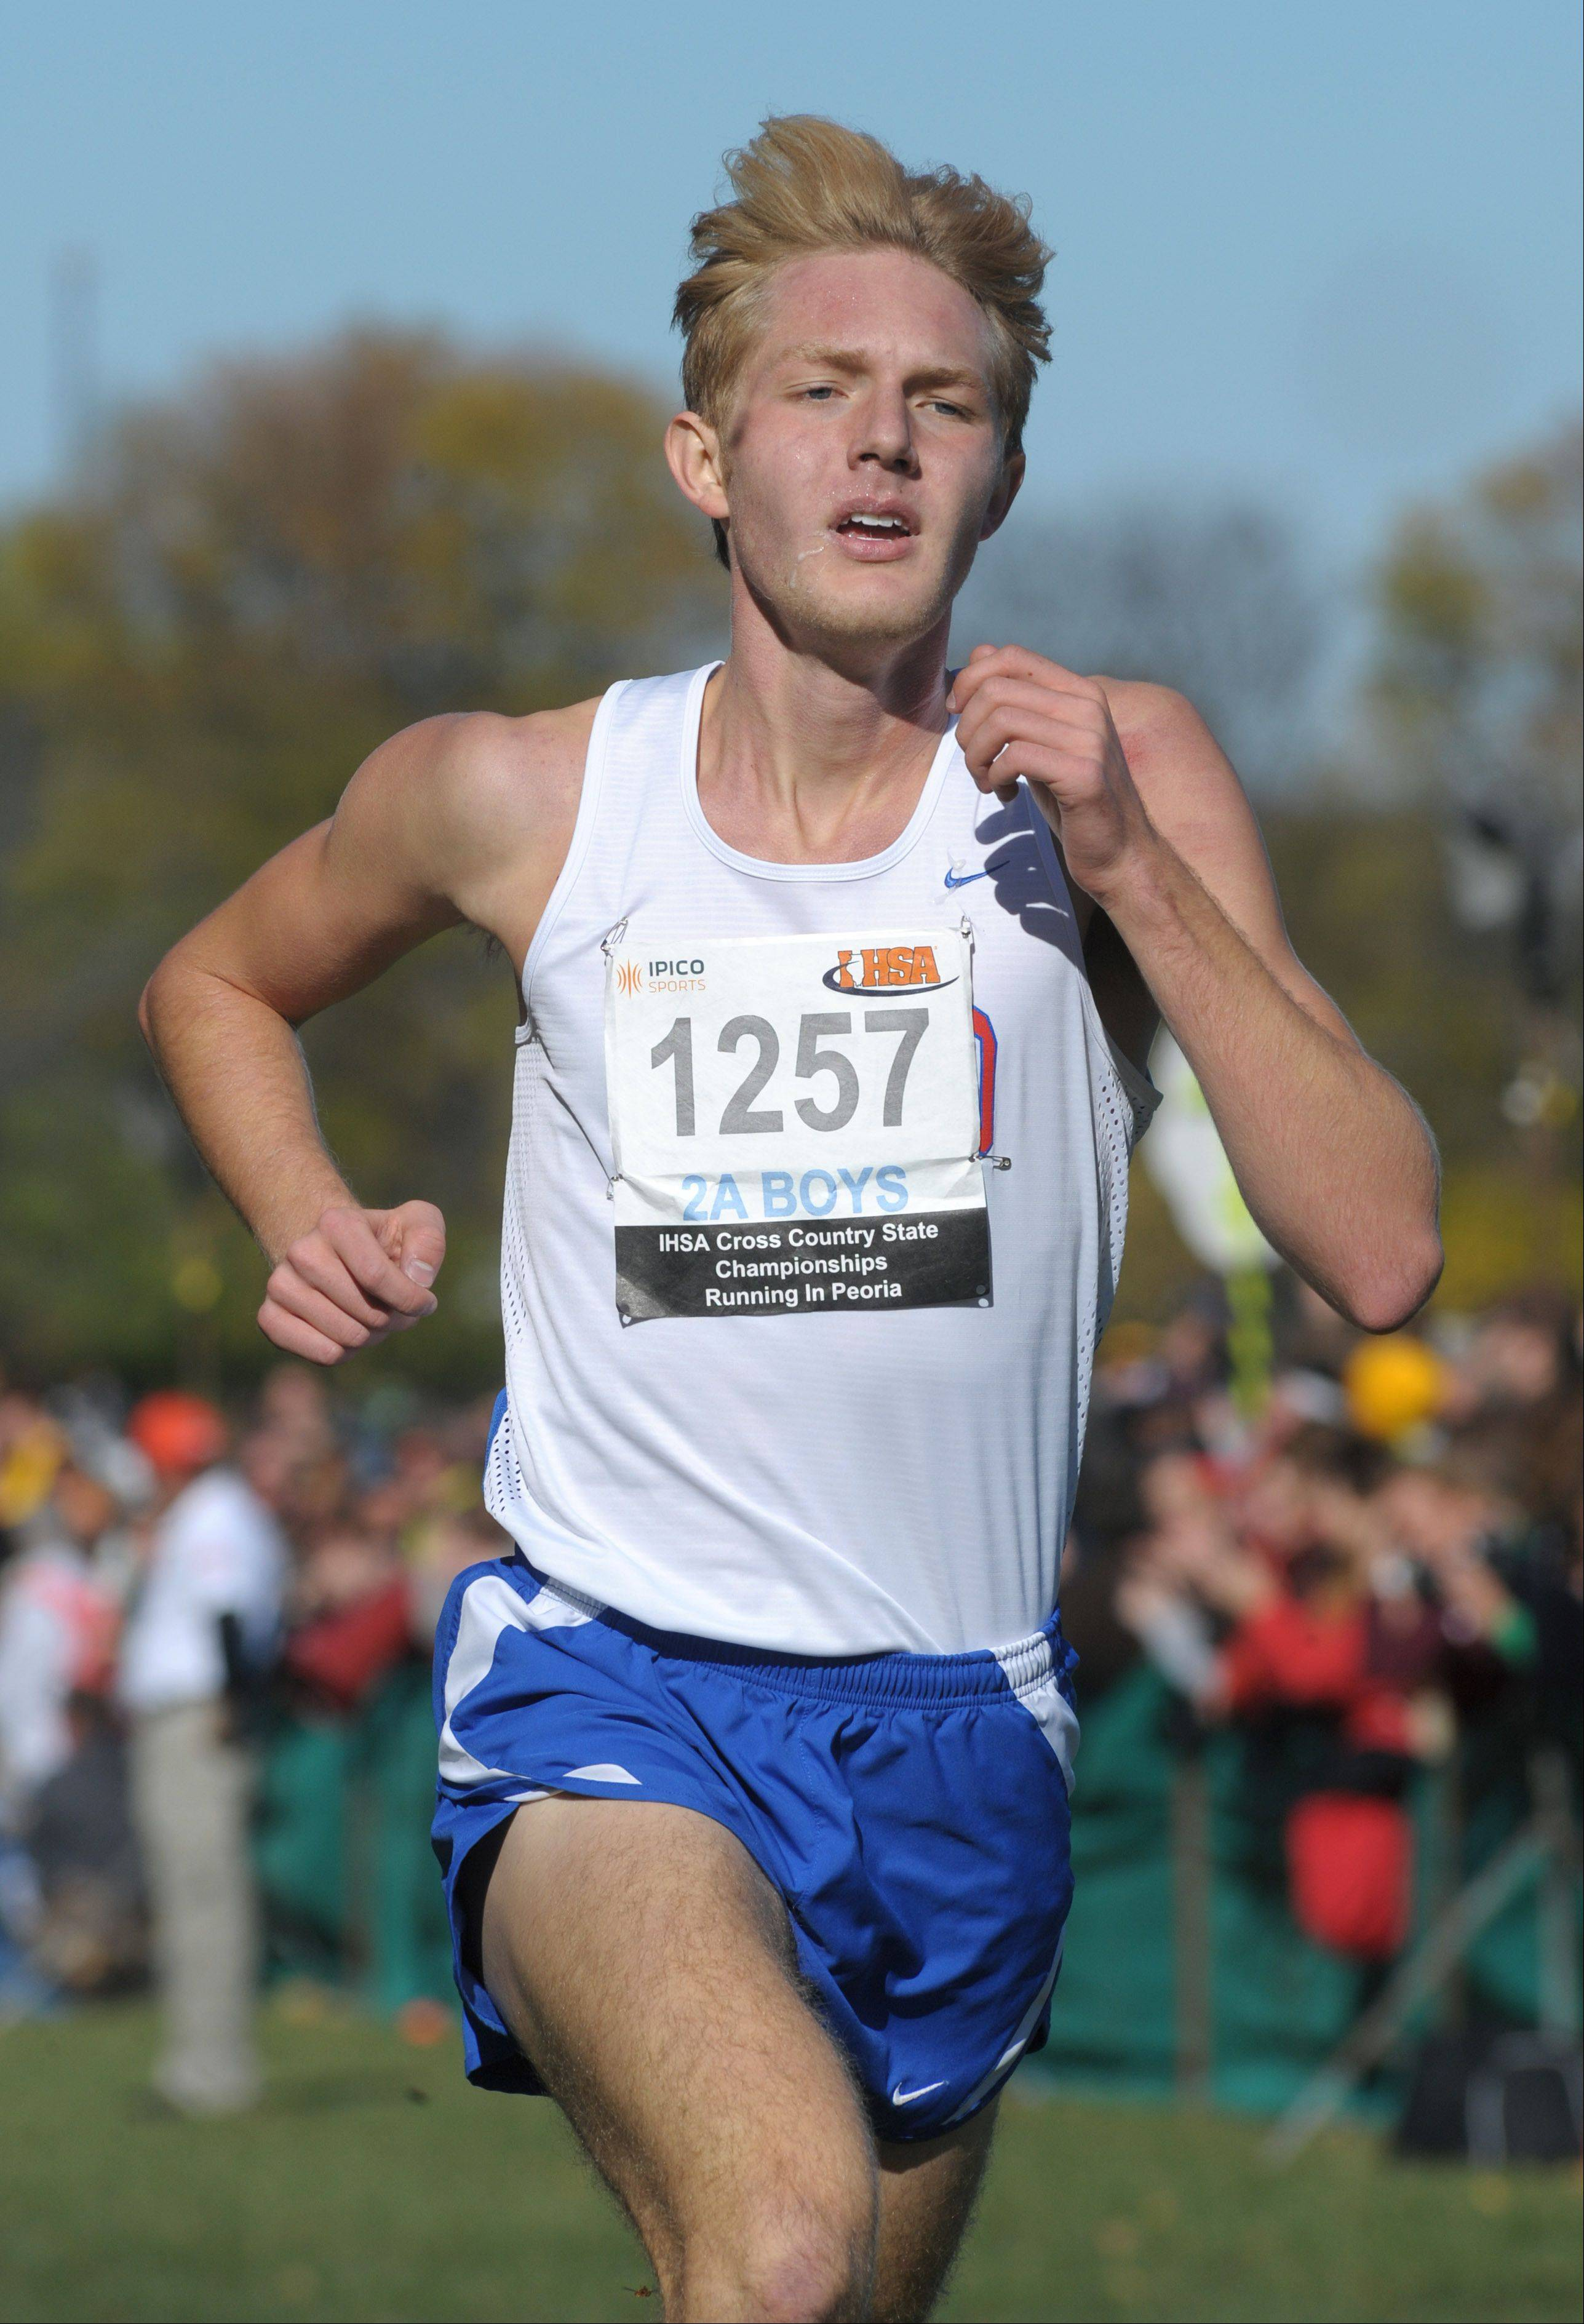 Glenbard South's John Wold takes first place in the Class 2A IHSA cross country state final at Detweiller Park in Peoria on Saturday, November 9.